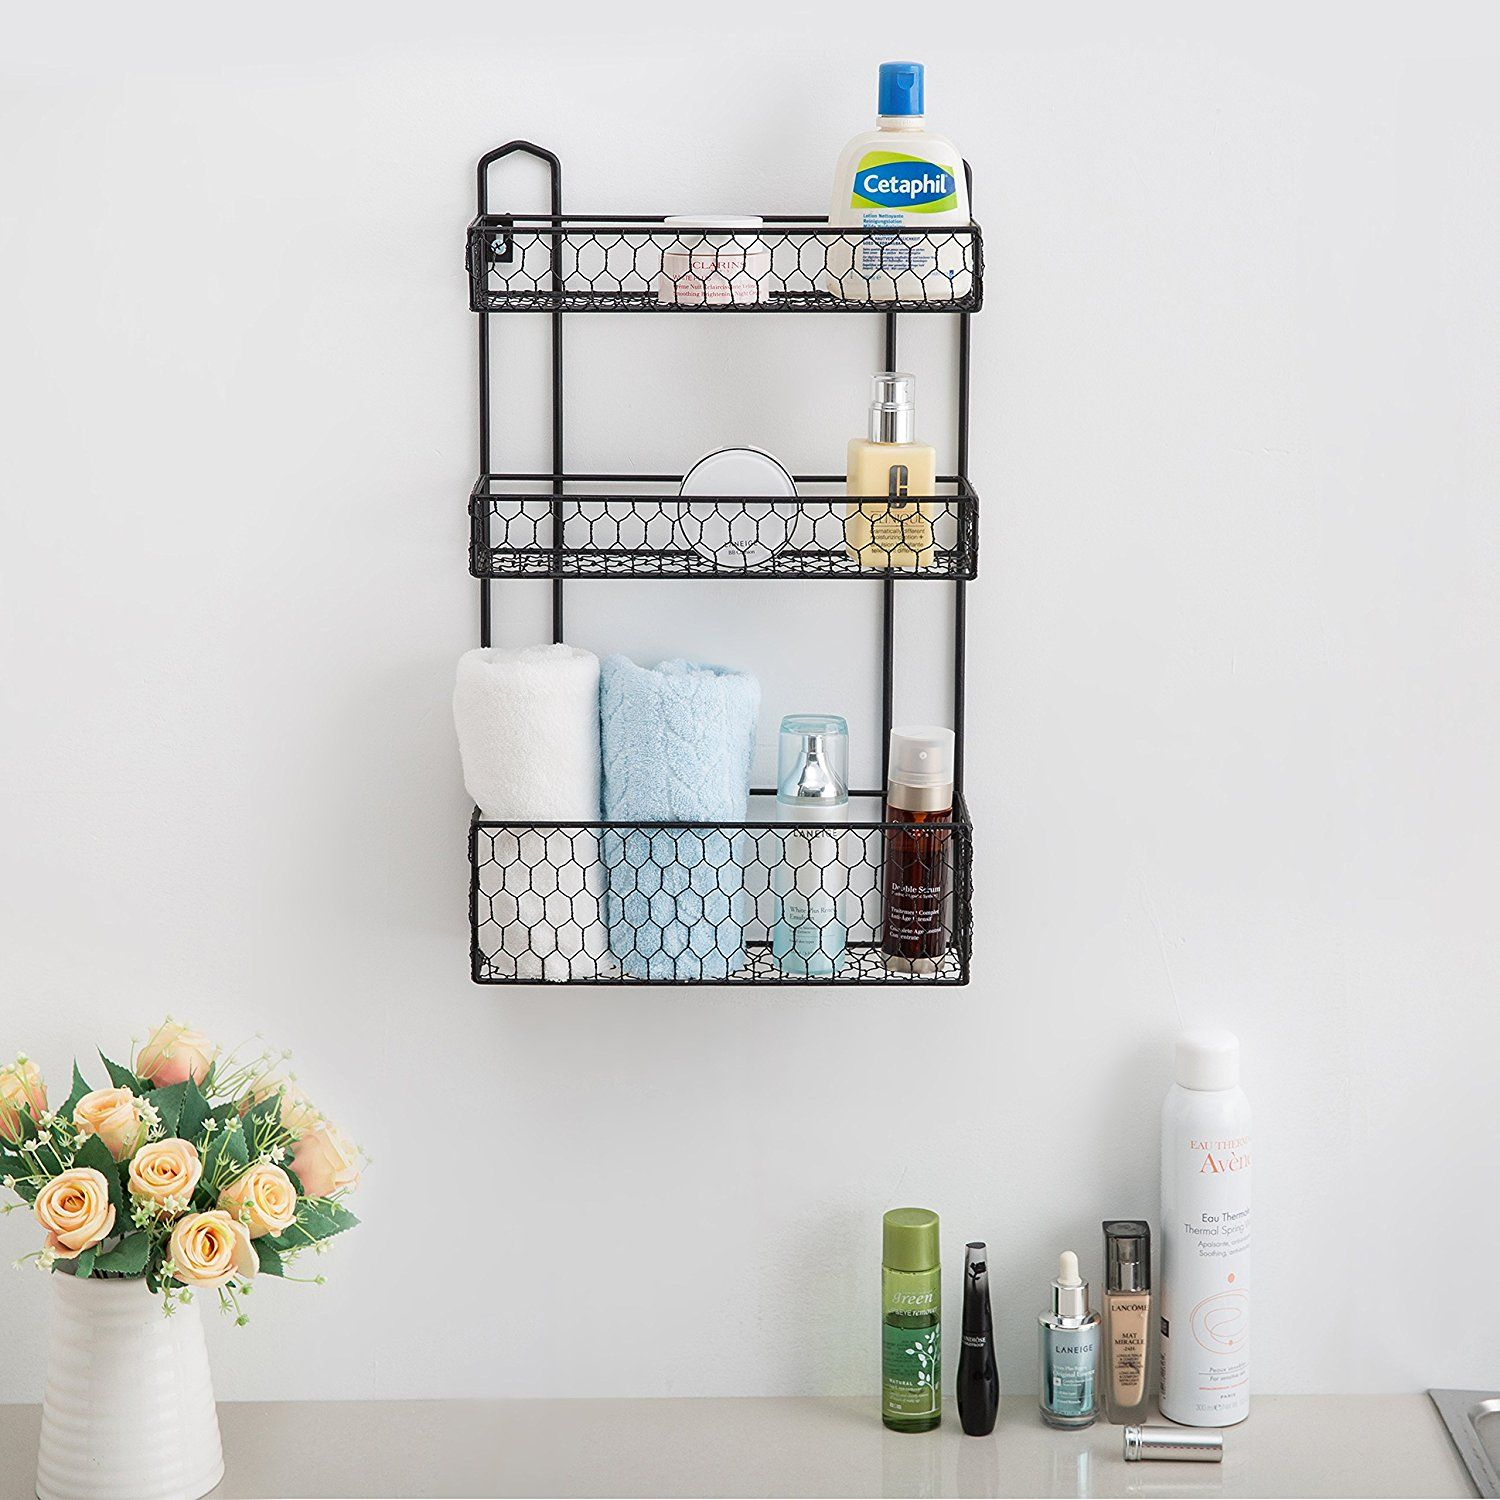 Exceptionnel An Easy To Install, Rustic Chicken Wire Wall Hanging Bathroom Organizer  Shelf